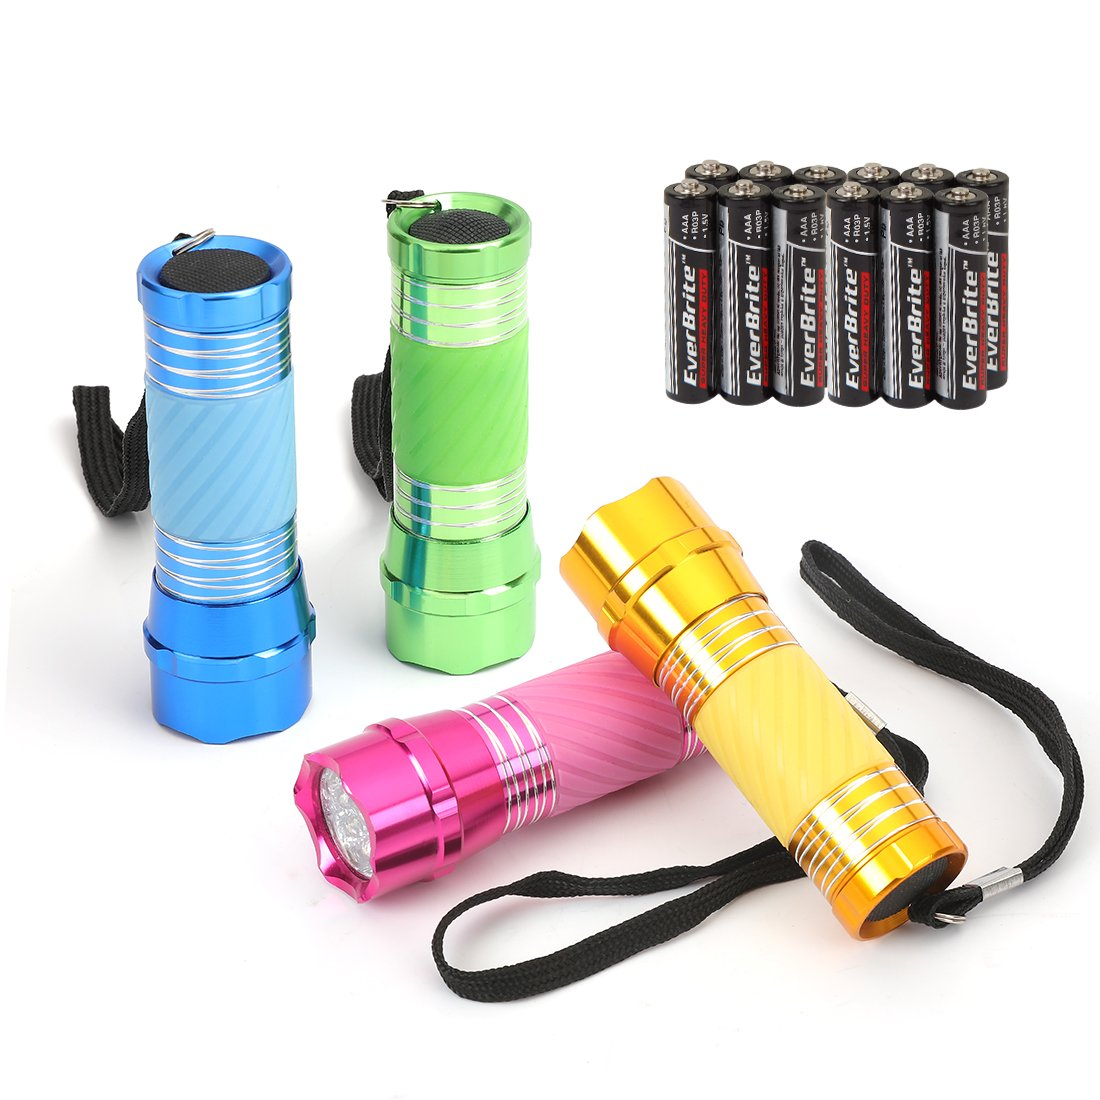 EverBrite 4-Pack Mini LED Aluminum Flashlight Party Favors Colors Assorted with Handle Glow in Dark LTD